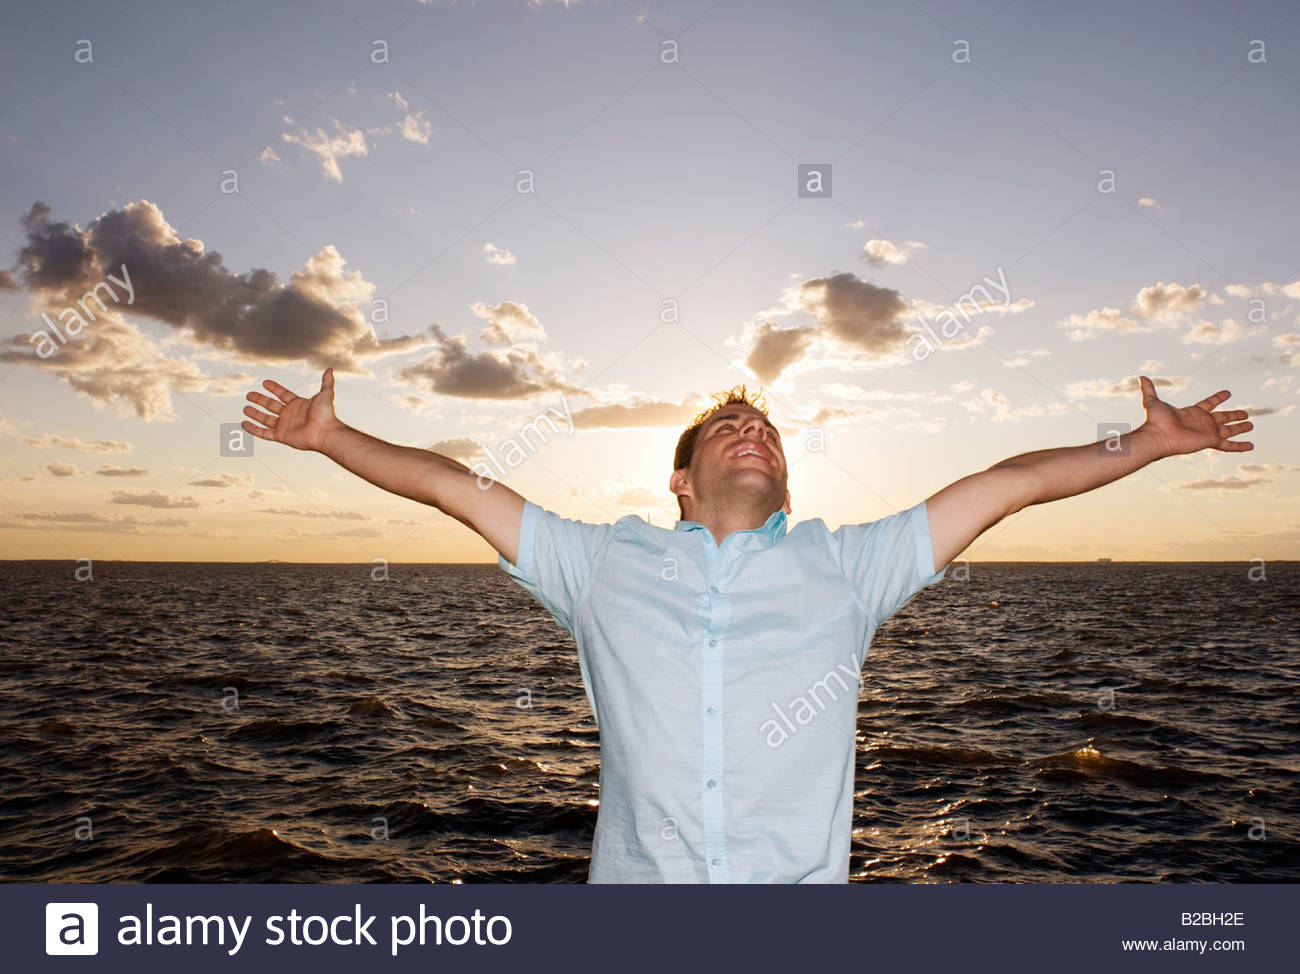 Man with arms outstretched - Stock Image